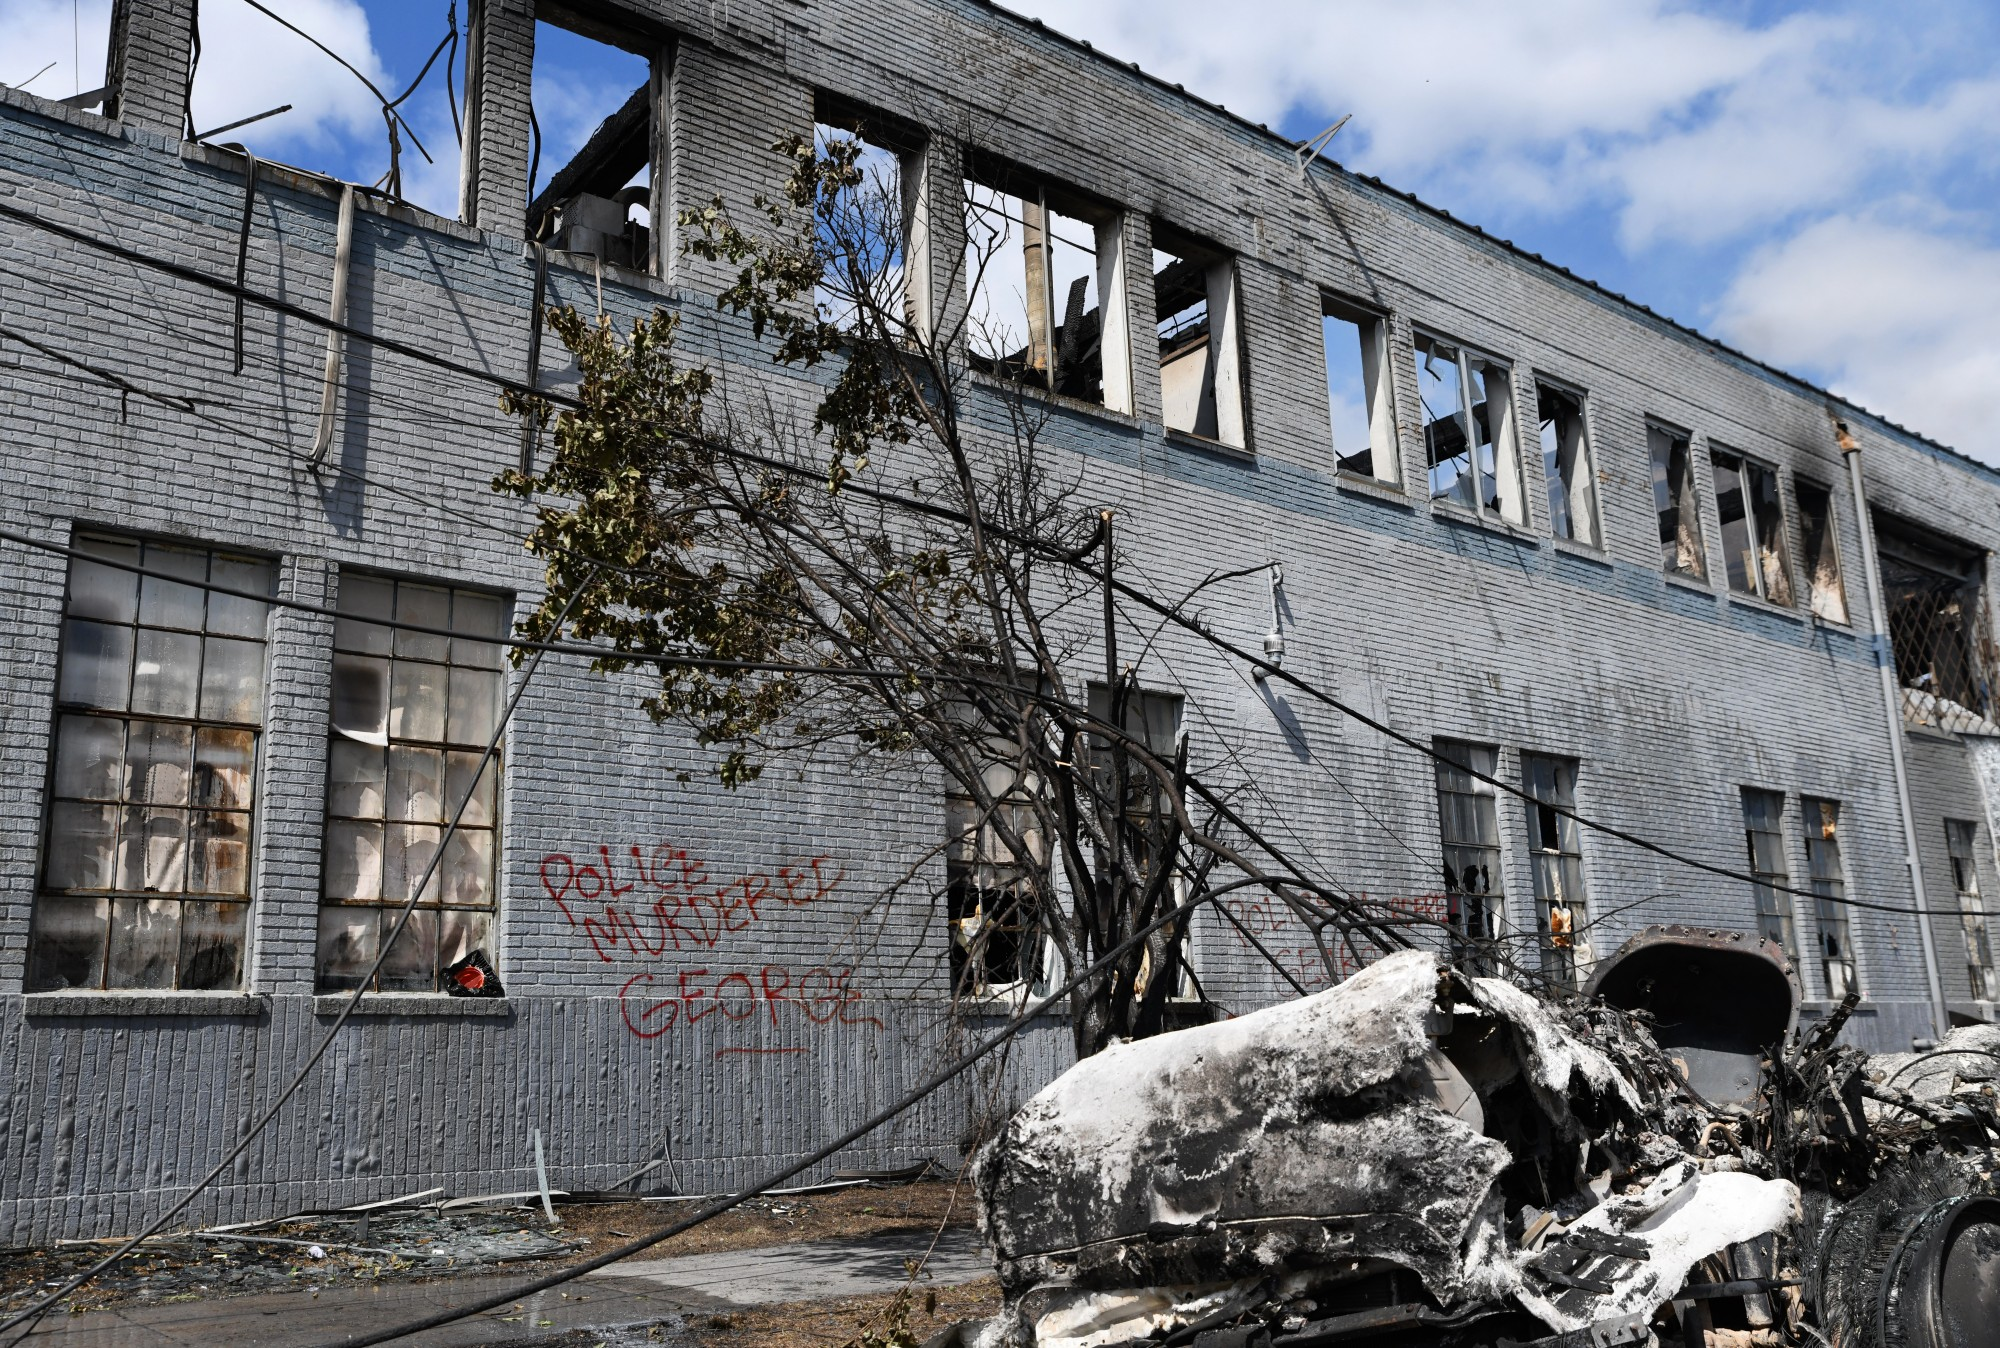 """""""Police Murdered George"""" is spray-painted on the wall of a burned building next to a melted vehicle and downed powerline near the MPD 3rd Precinct in Minneapolis on Friday, May 29."""